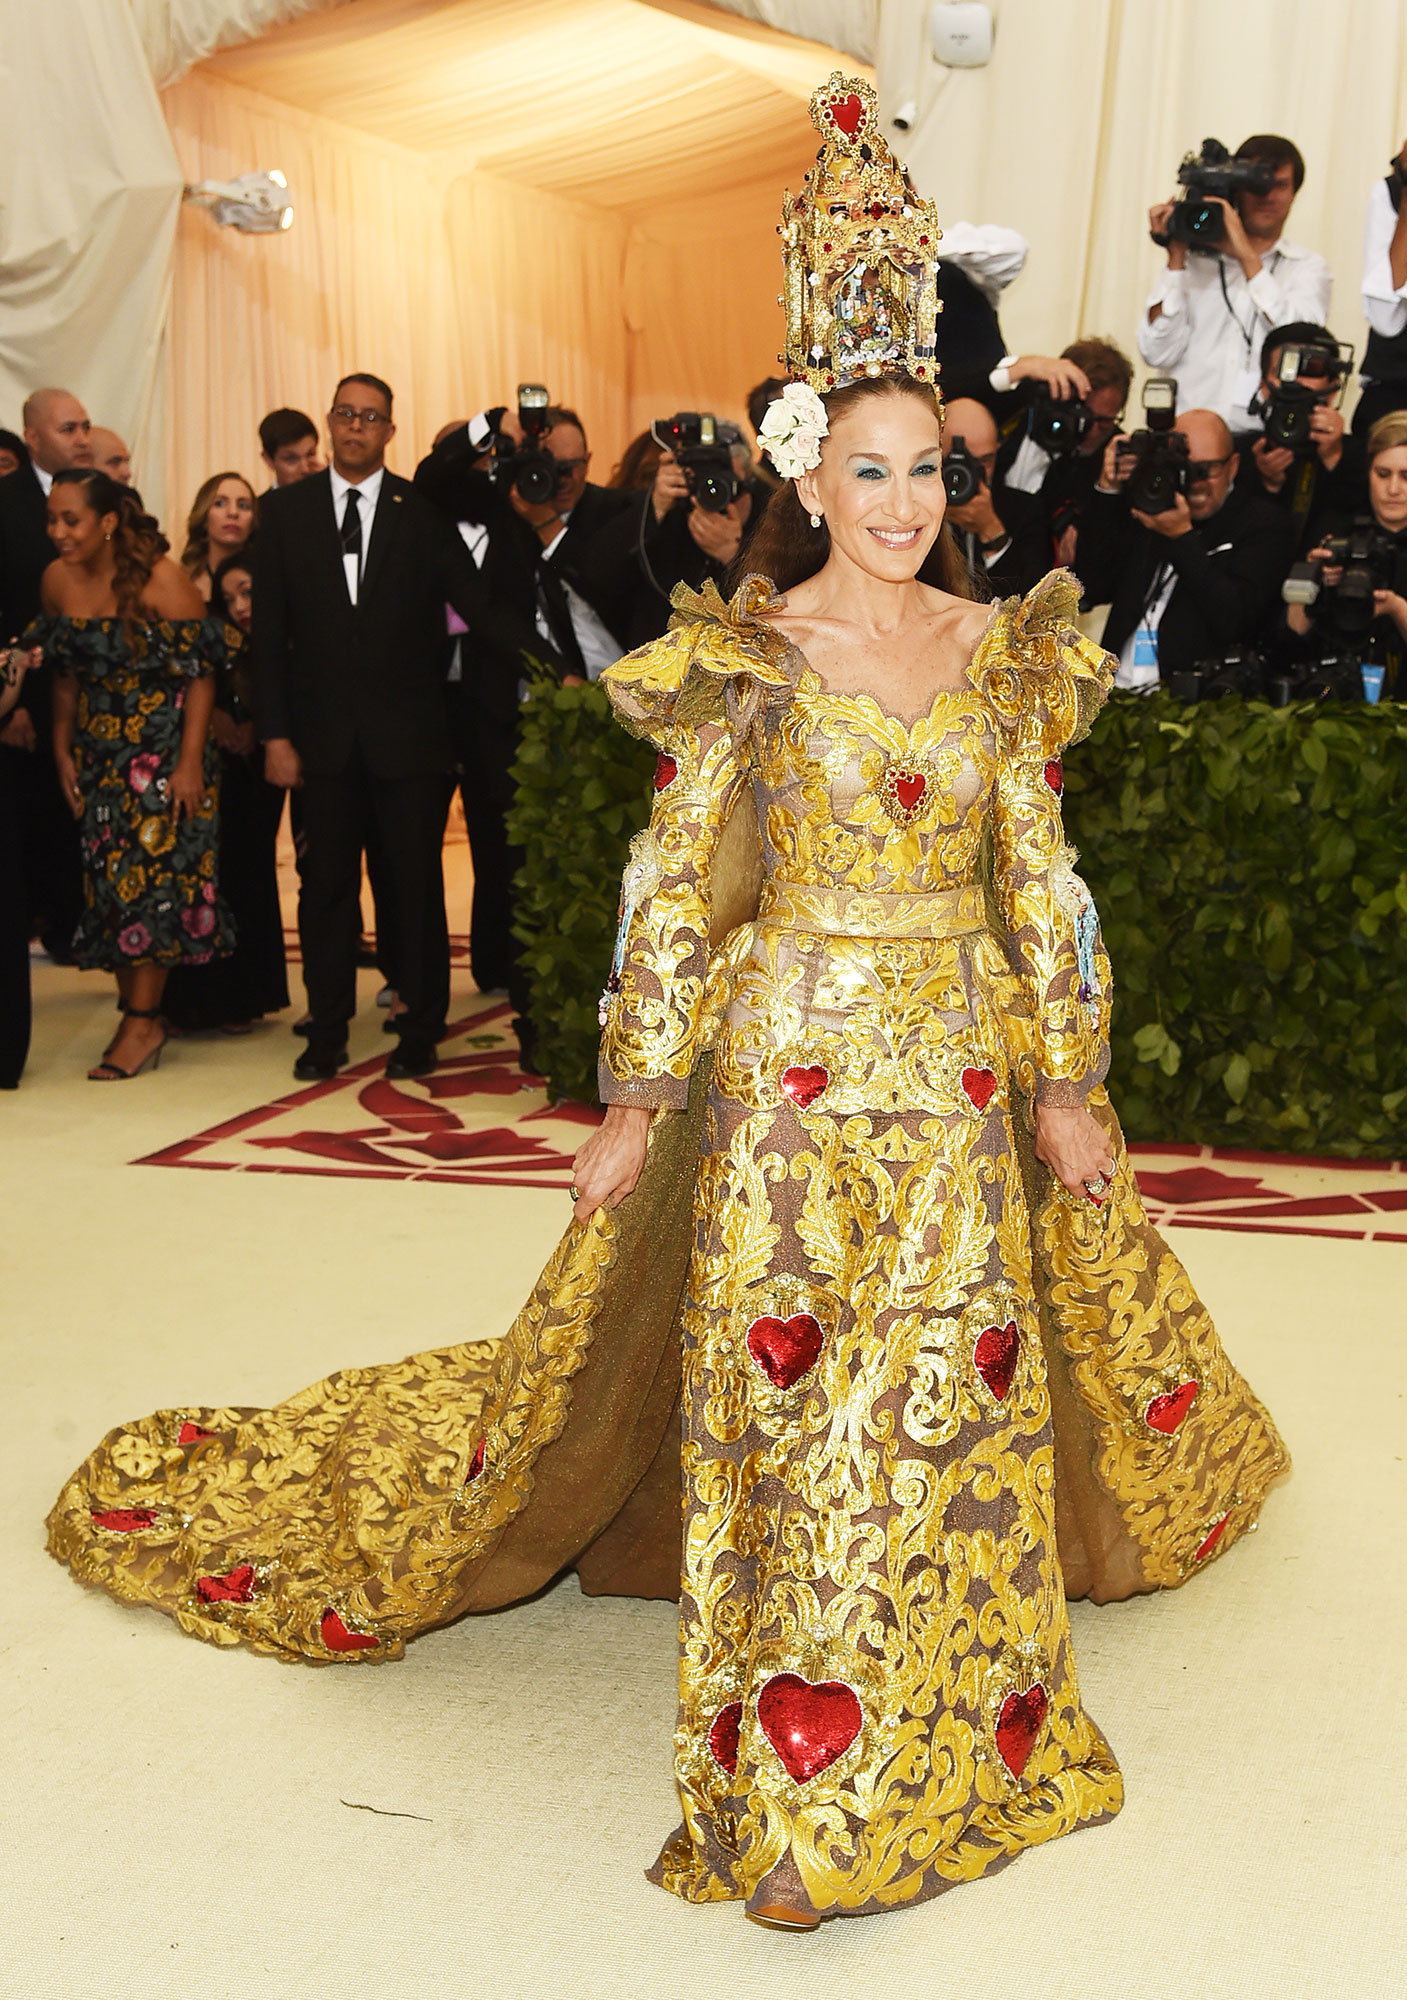 Sarah Jessica Parker The Wild Met Gala Red Carpet Fashion Looks We Can't Stop Thinking About - In Dolce & Gabbana.